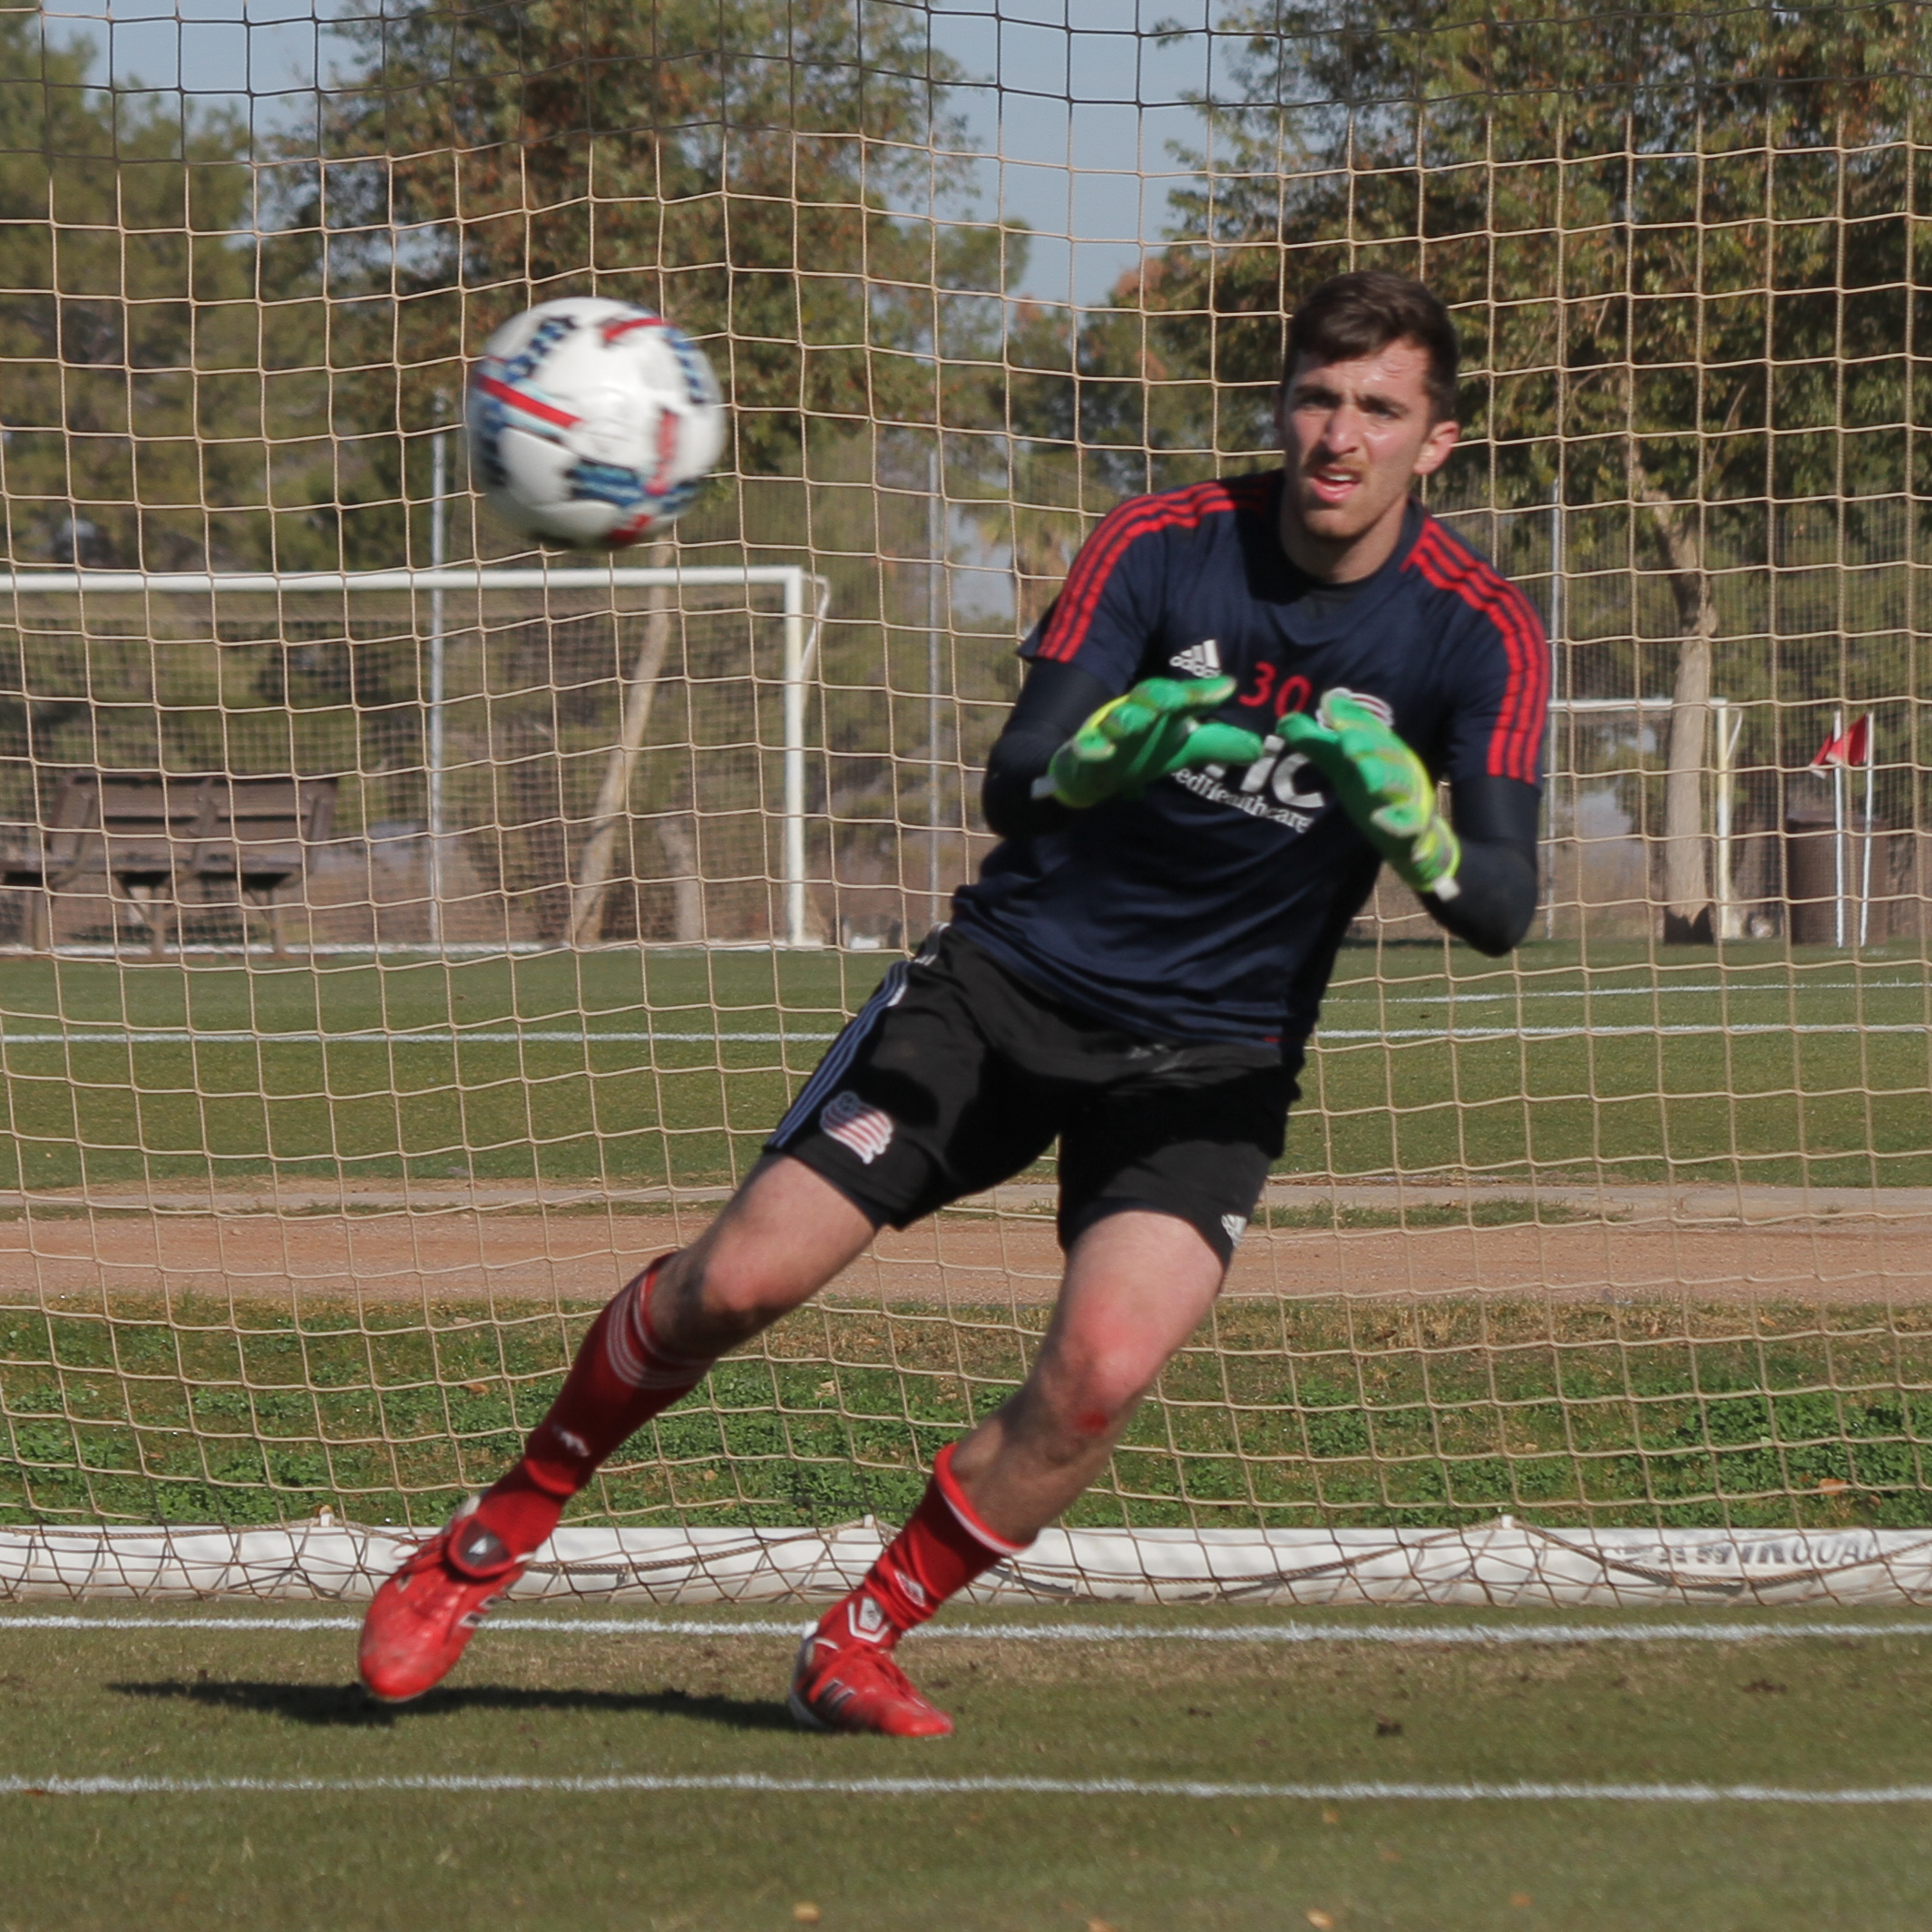 2017 Preseason: Casa Grande, AZ - Preseason Game 1, New England Revolution vs. Minnesota United FC